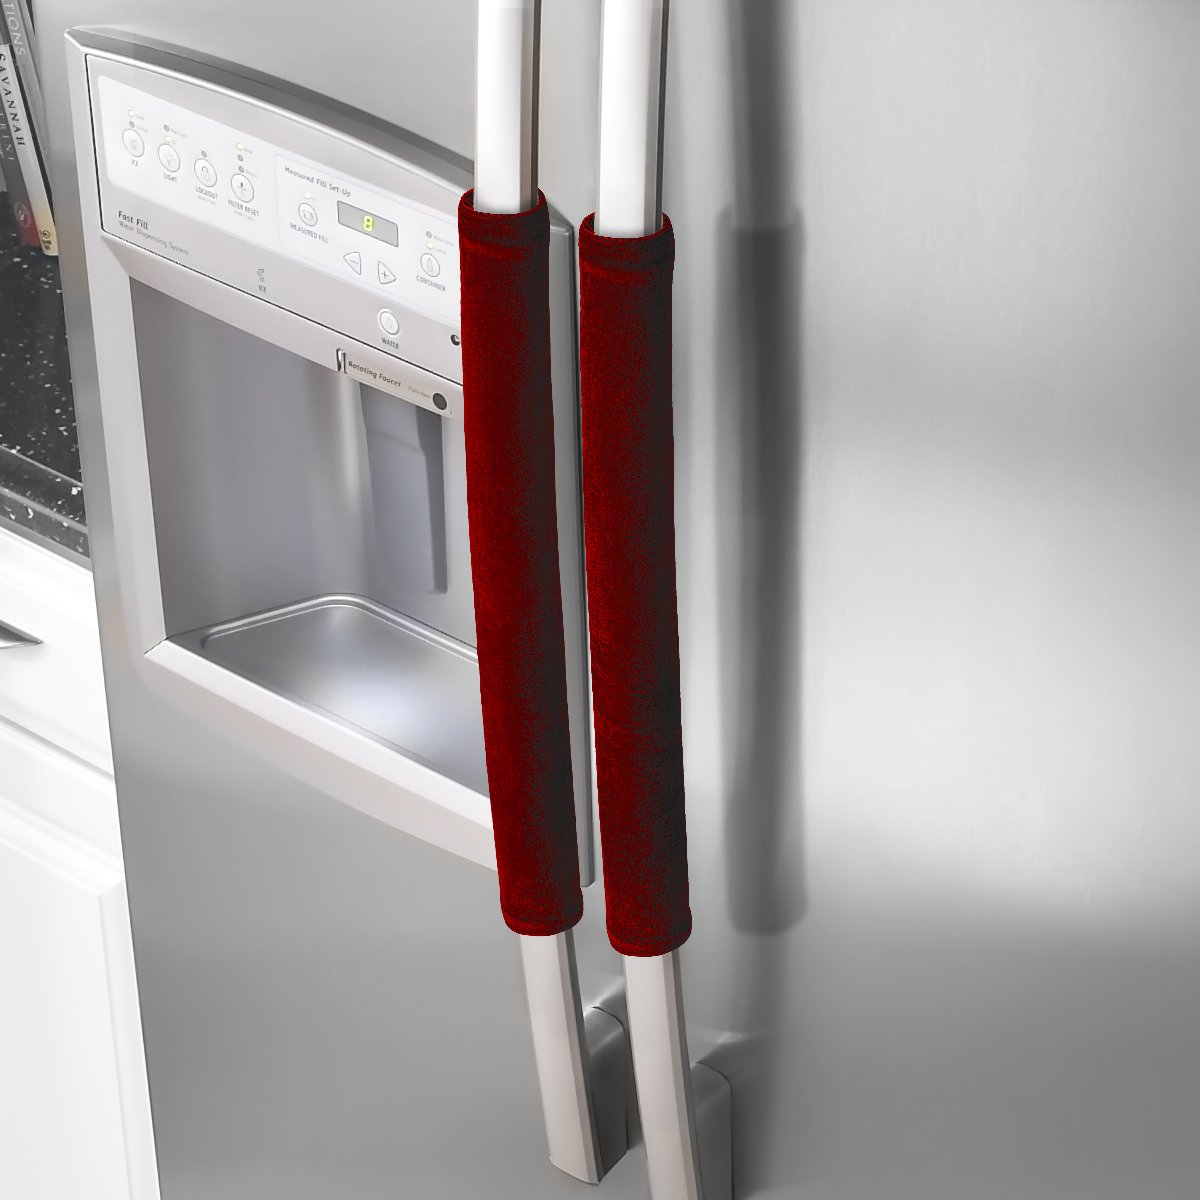 OUGAR8 Refrigerator Door Handle Covers,Keep Your Kitchen Appliance Clean from Smudges, Fingertips, Drips, Food Stains, Perfect for Dishwashers(Dark Red,Burgundy)